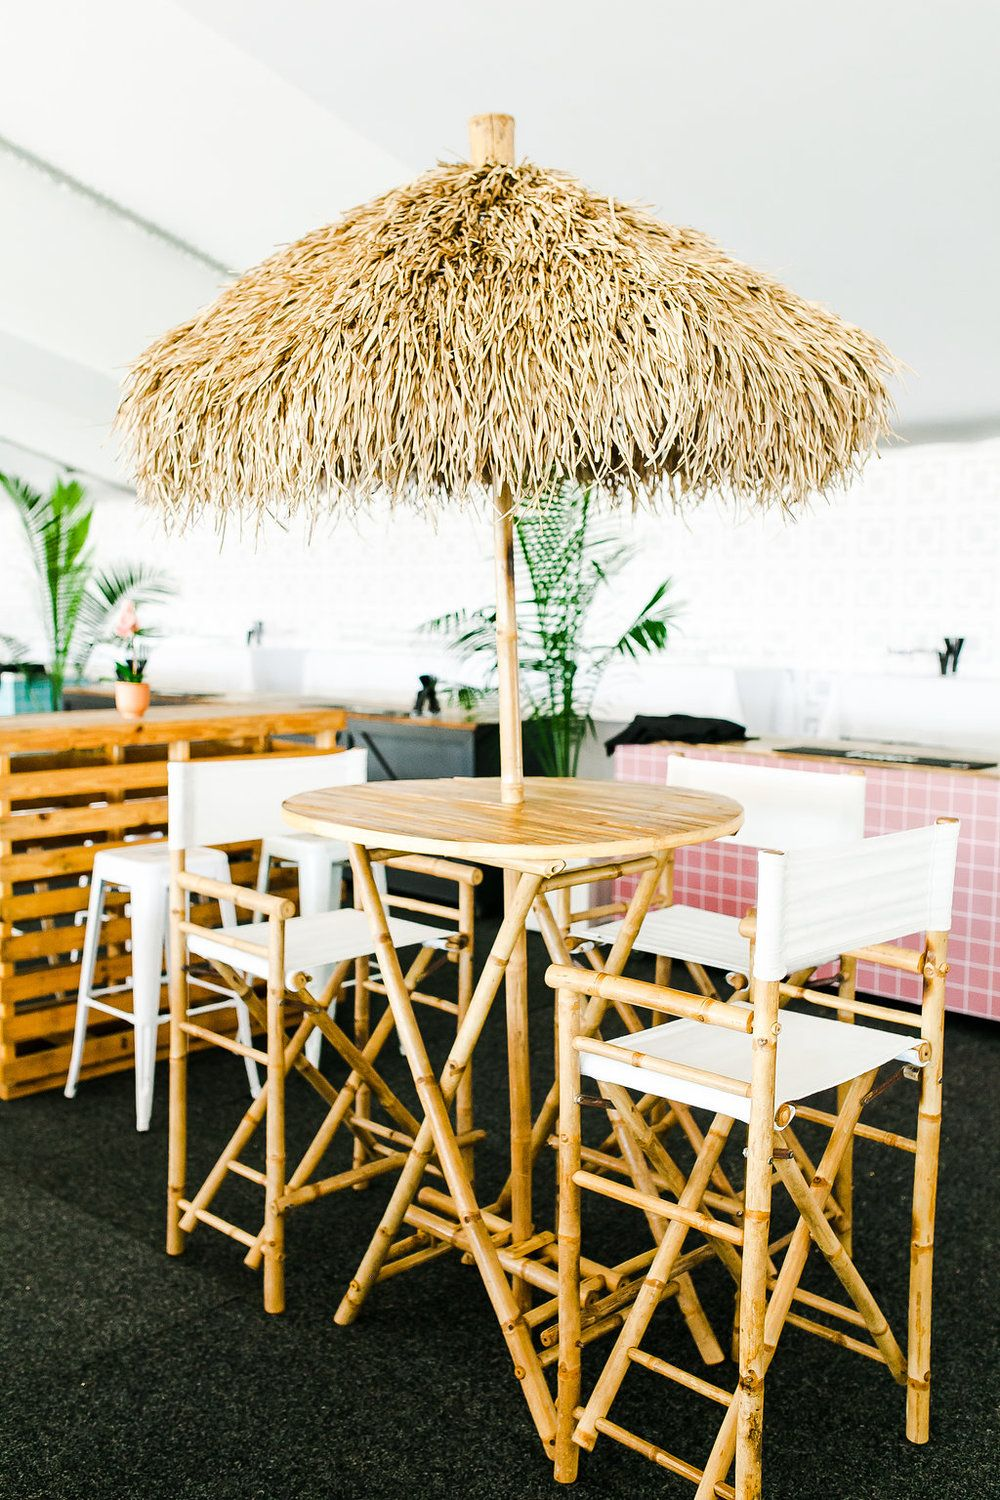 Corporate event styling doomben racecourse brisbane racing club event furniture hire by hampton